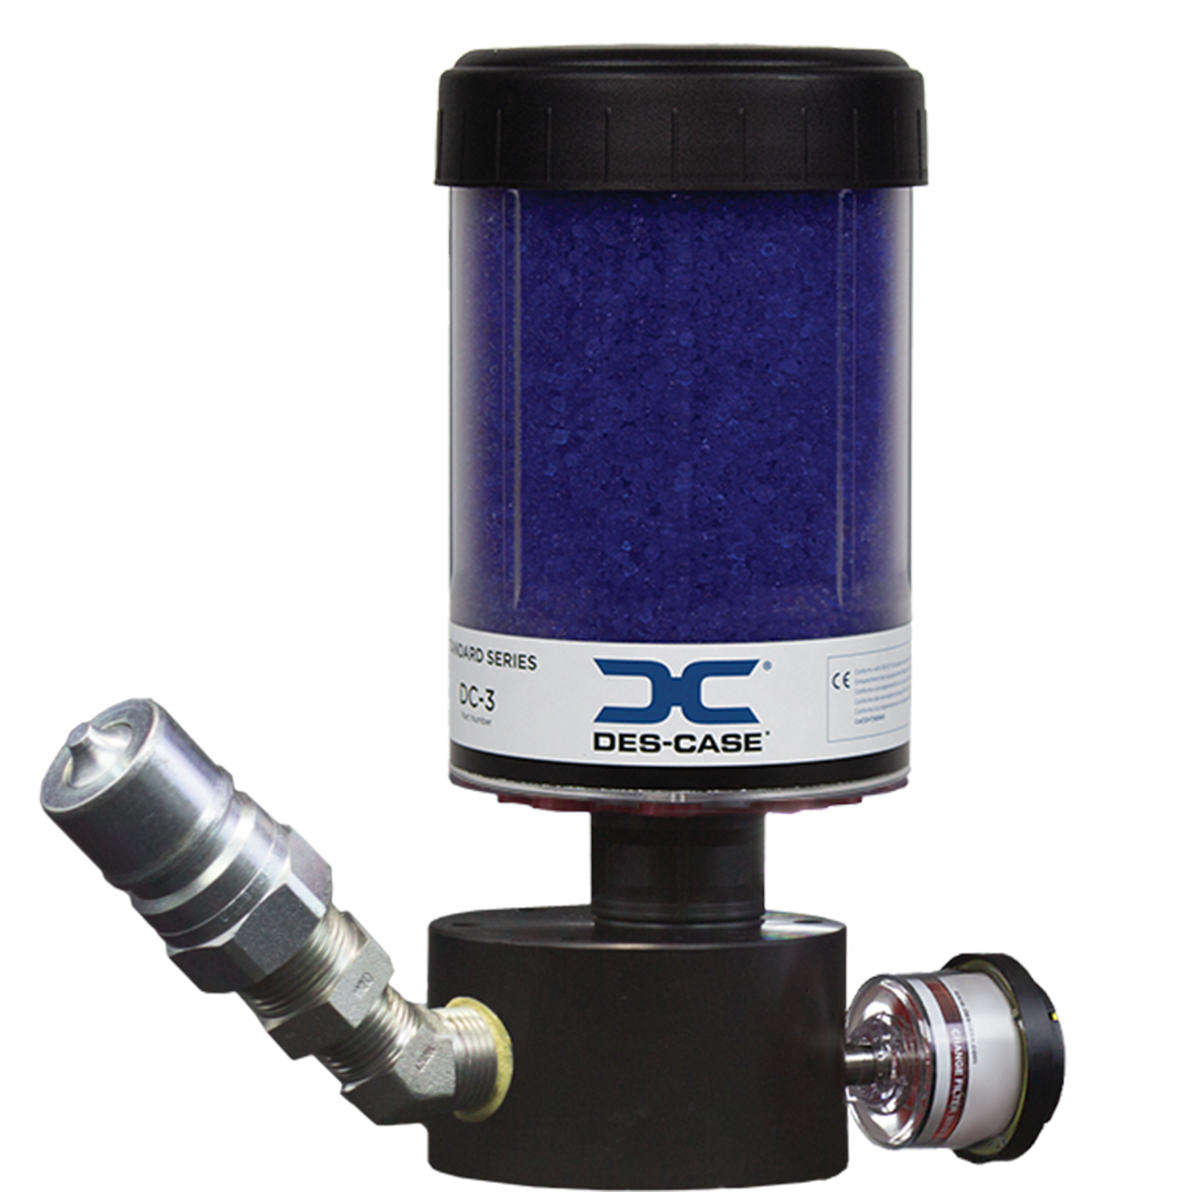 Des-Case Hydraulic Adapter Kit1.1